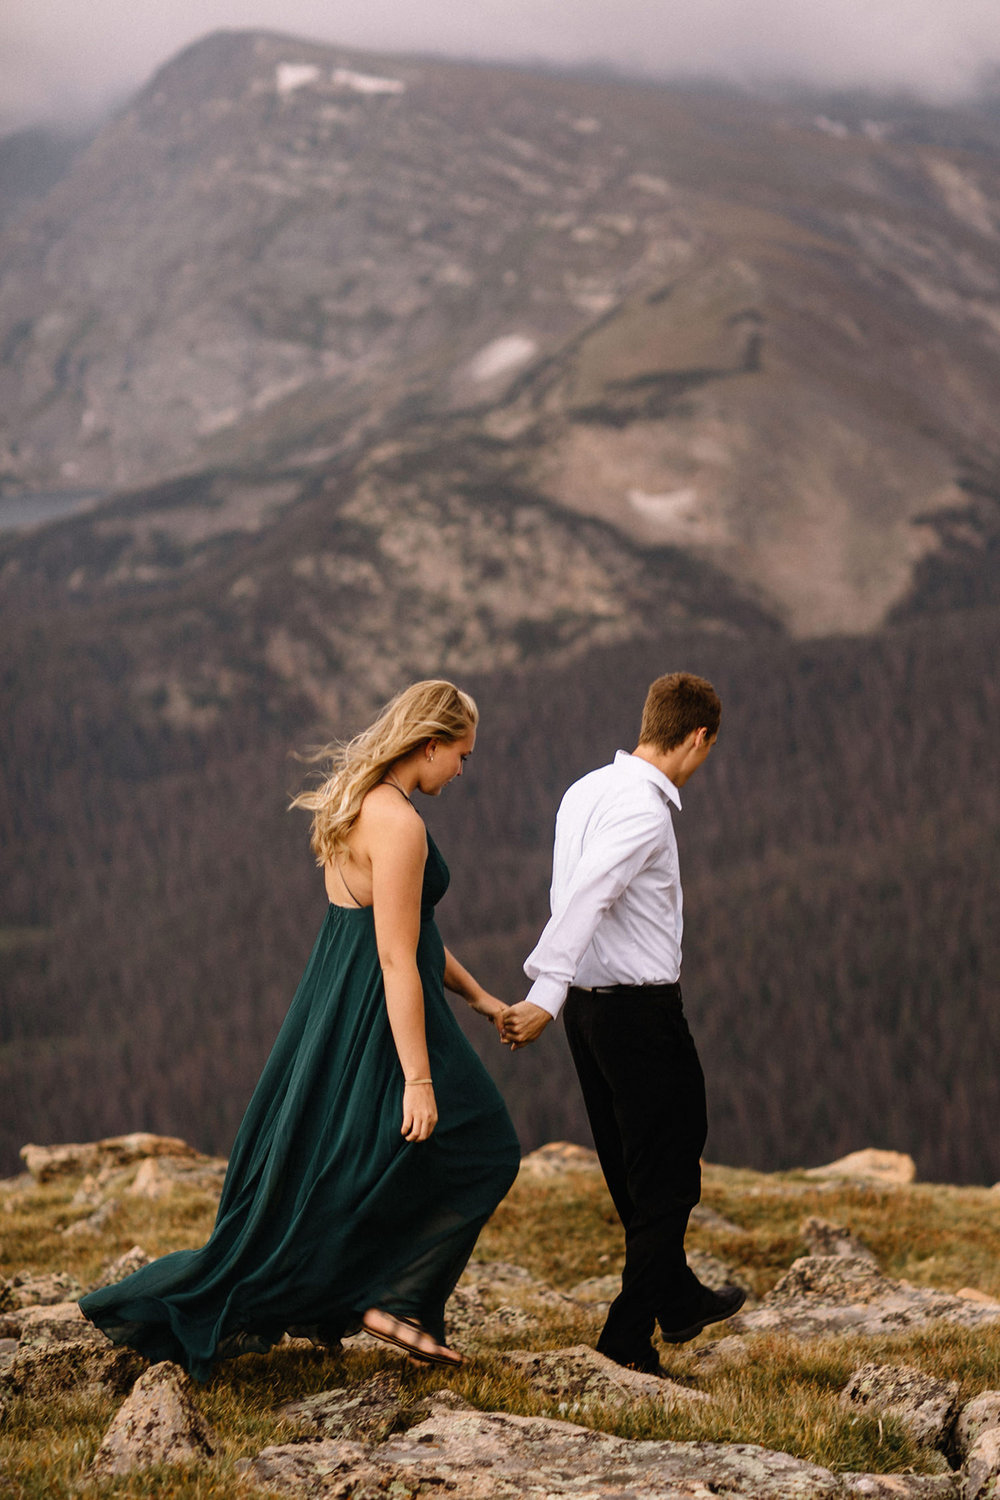 Rocky Mountain Engagement National Park Engaged Photos Wedding Elopement Portrait Mountains Trail Ridge Rd Peak Alpine Dress Lulus Rules Permit Photo Adventure Love Couples Destination Liz Osban photography Cheyenne Wyoming16.jpg